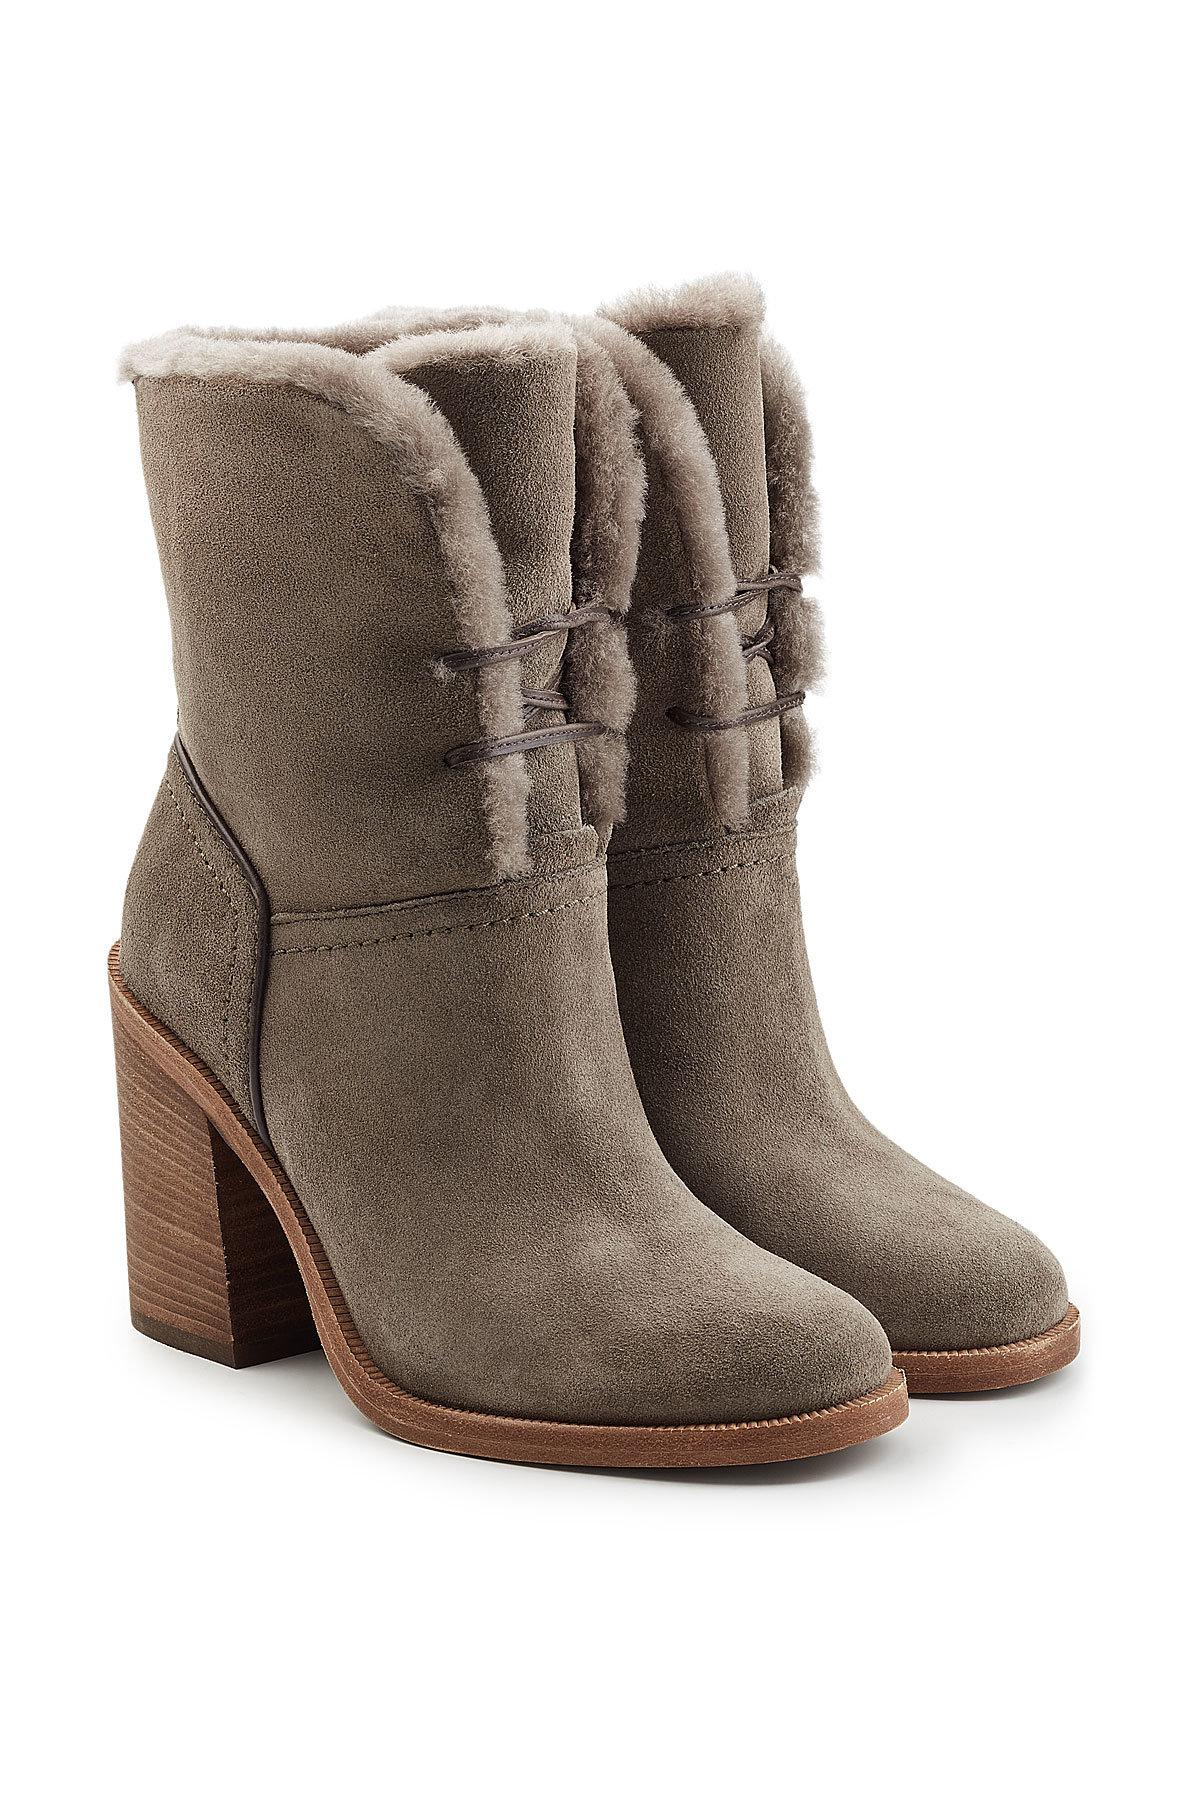 6d2be7b3bf6 ... greece lyst ugg jerene suede boots with sheepskin insole a95b7 286d9